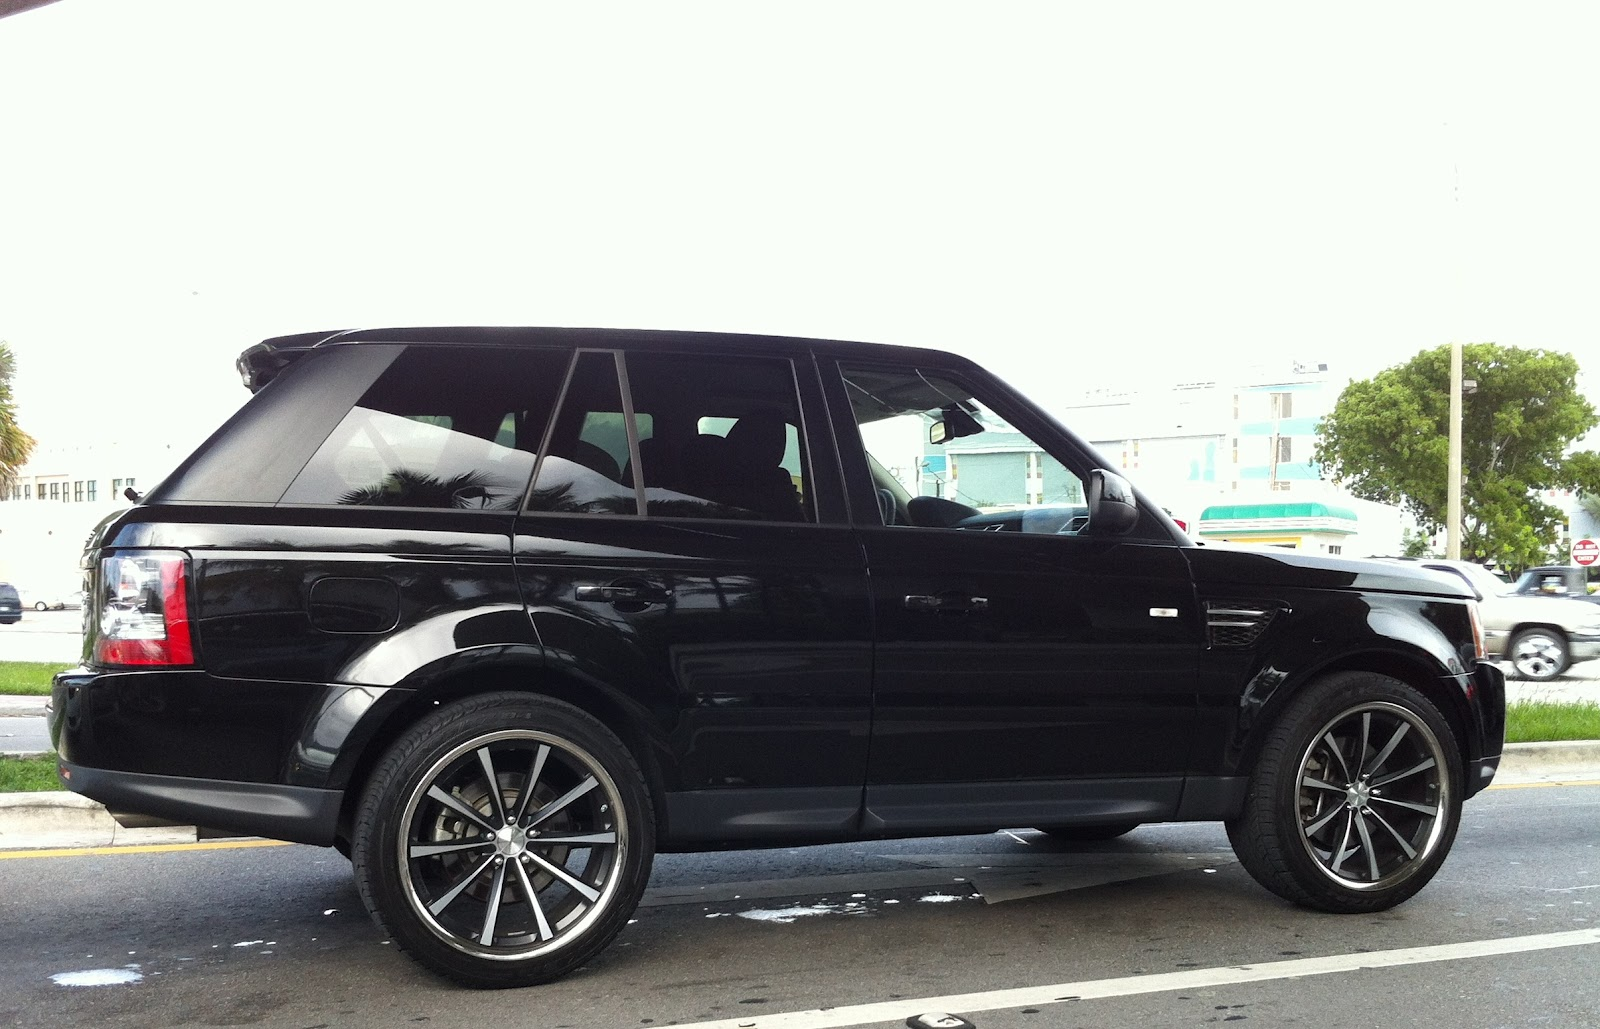 Black Range Rover Wheels Black Range Rover Supercharged